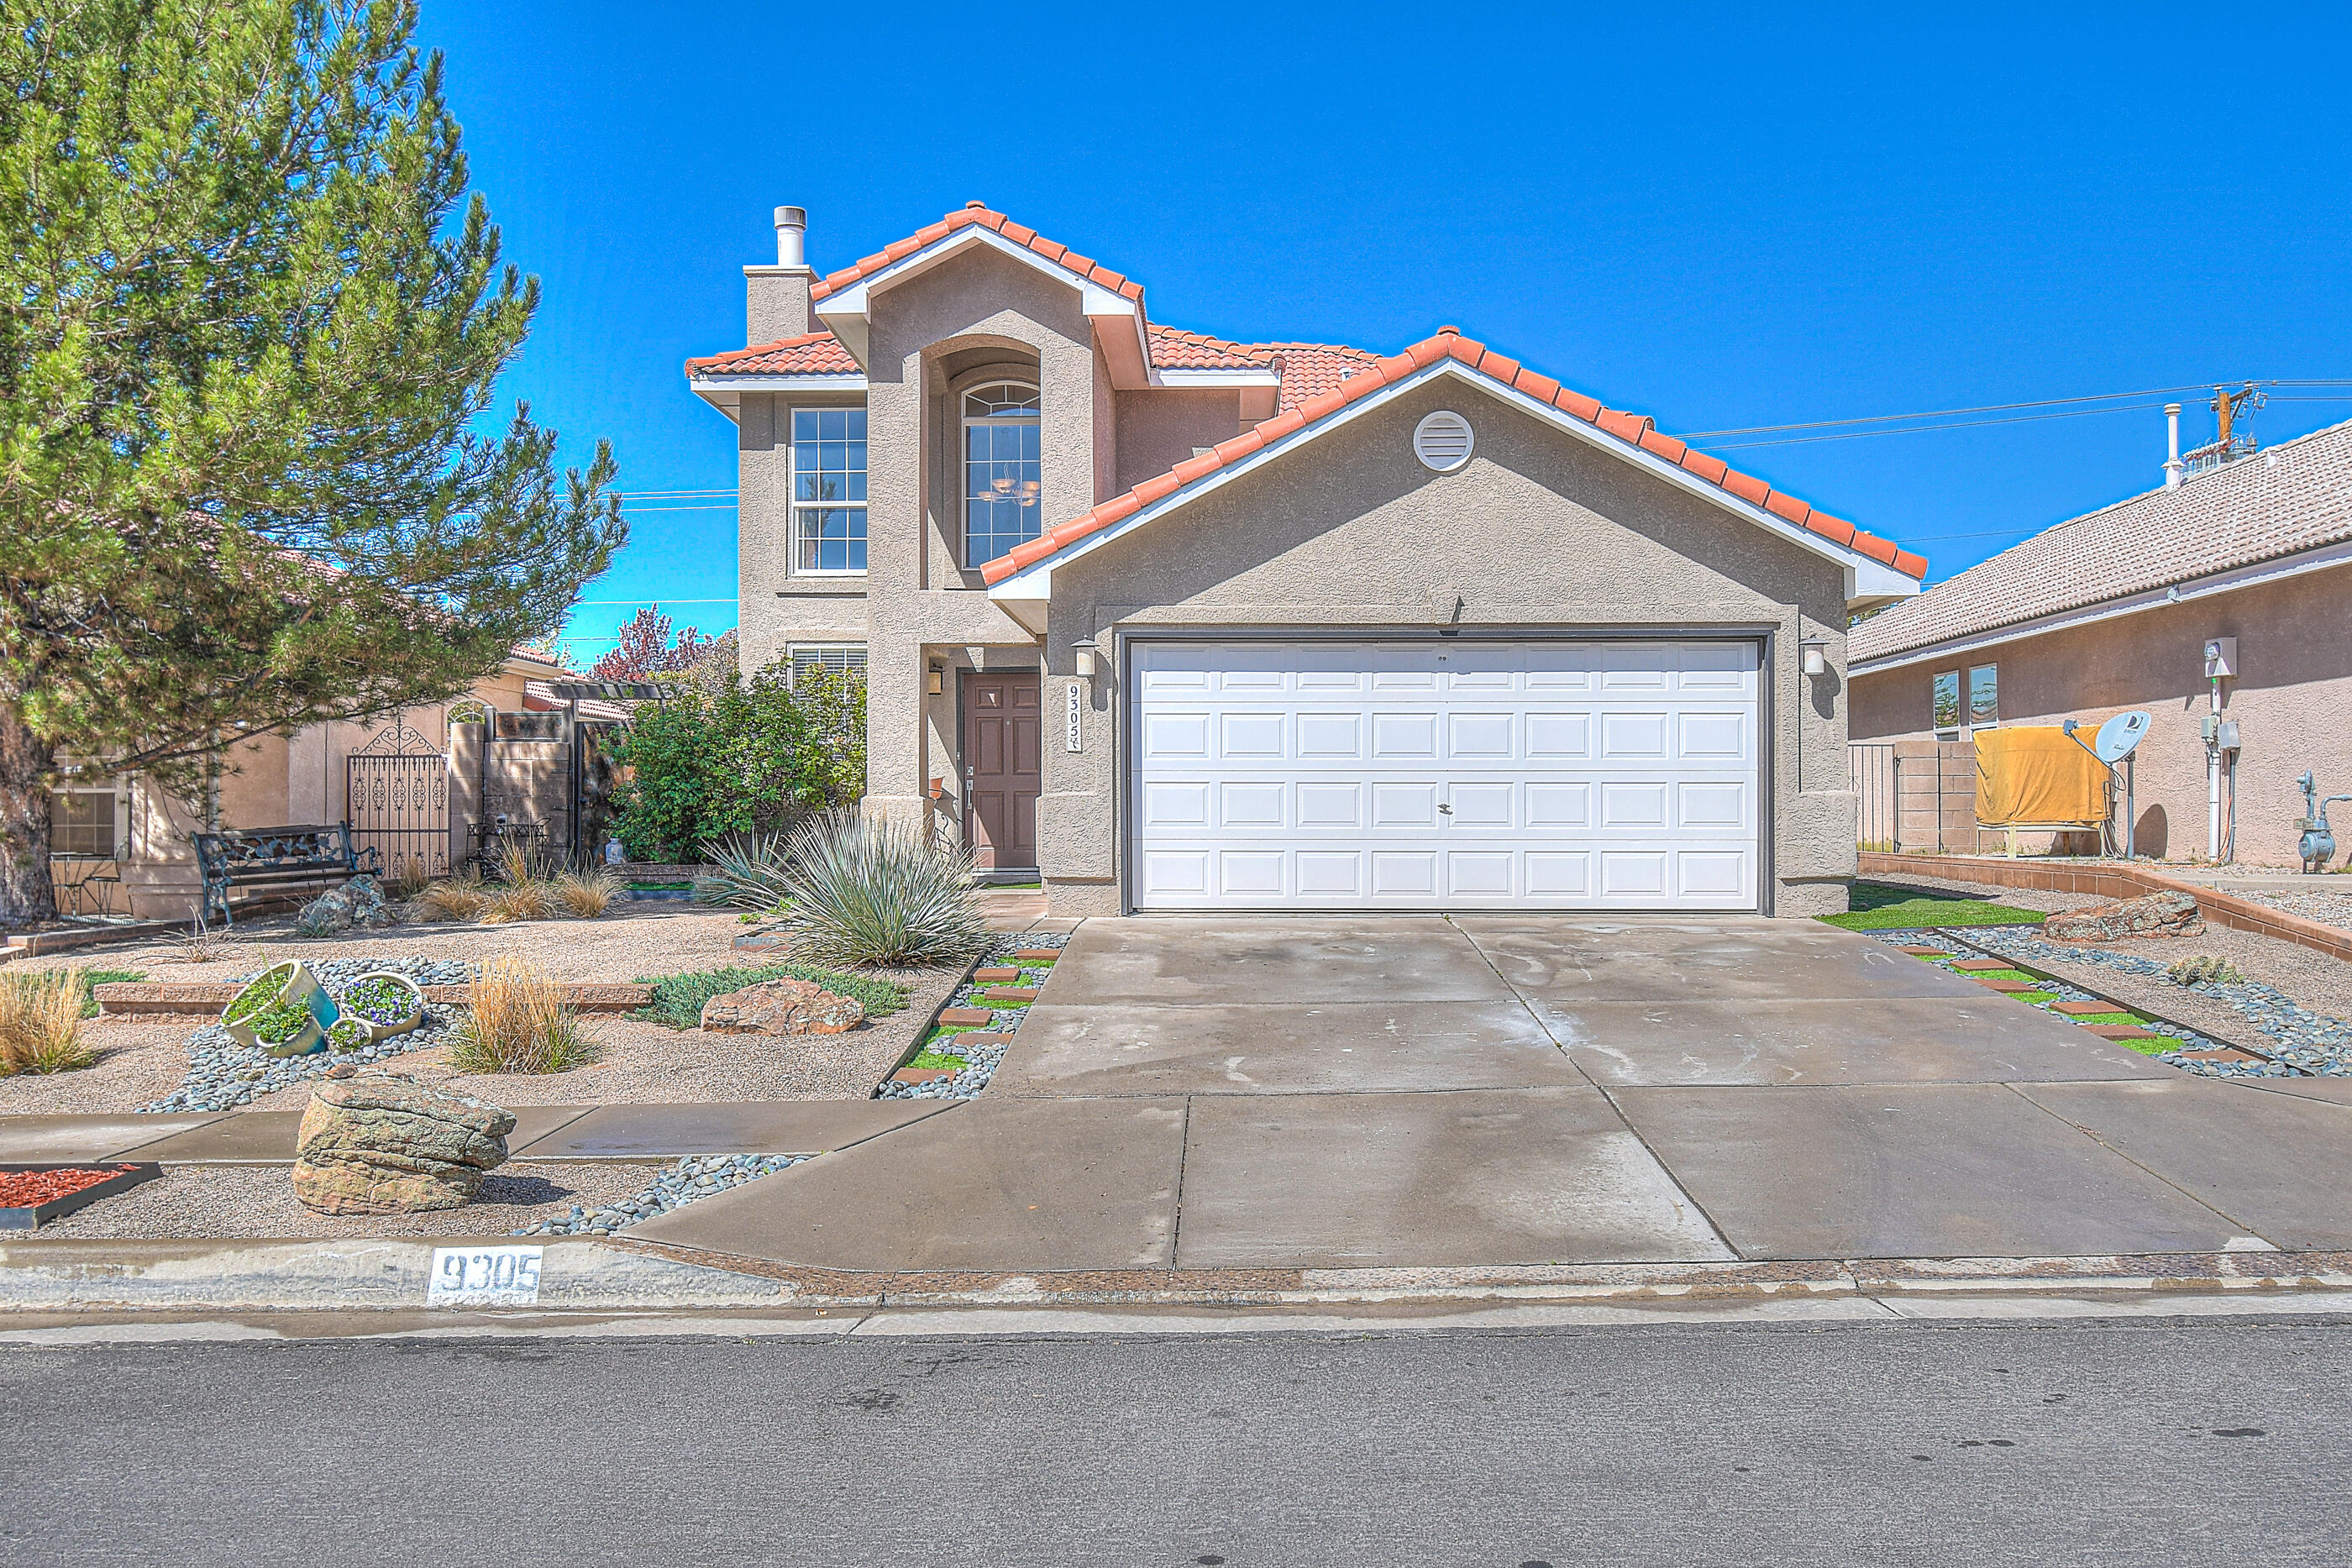 Come see this move in ready home with beautiful curb appeal. Location provides convenient access to Paseo del Norte, grocery stores, shopping centers, restaurants, golf course and other entertainment. Large open back yard offers plenty of space to design an area for gatherings or entertaining.Open house on 4/21/2021 from 12pm-4pm